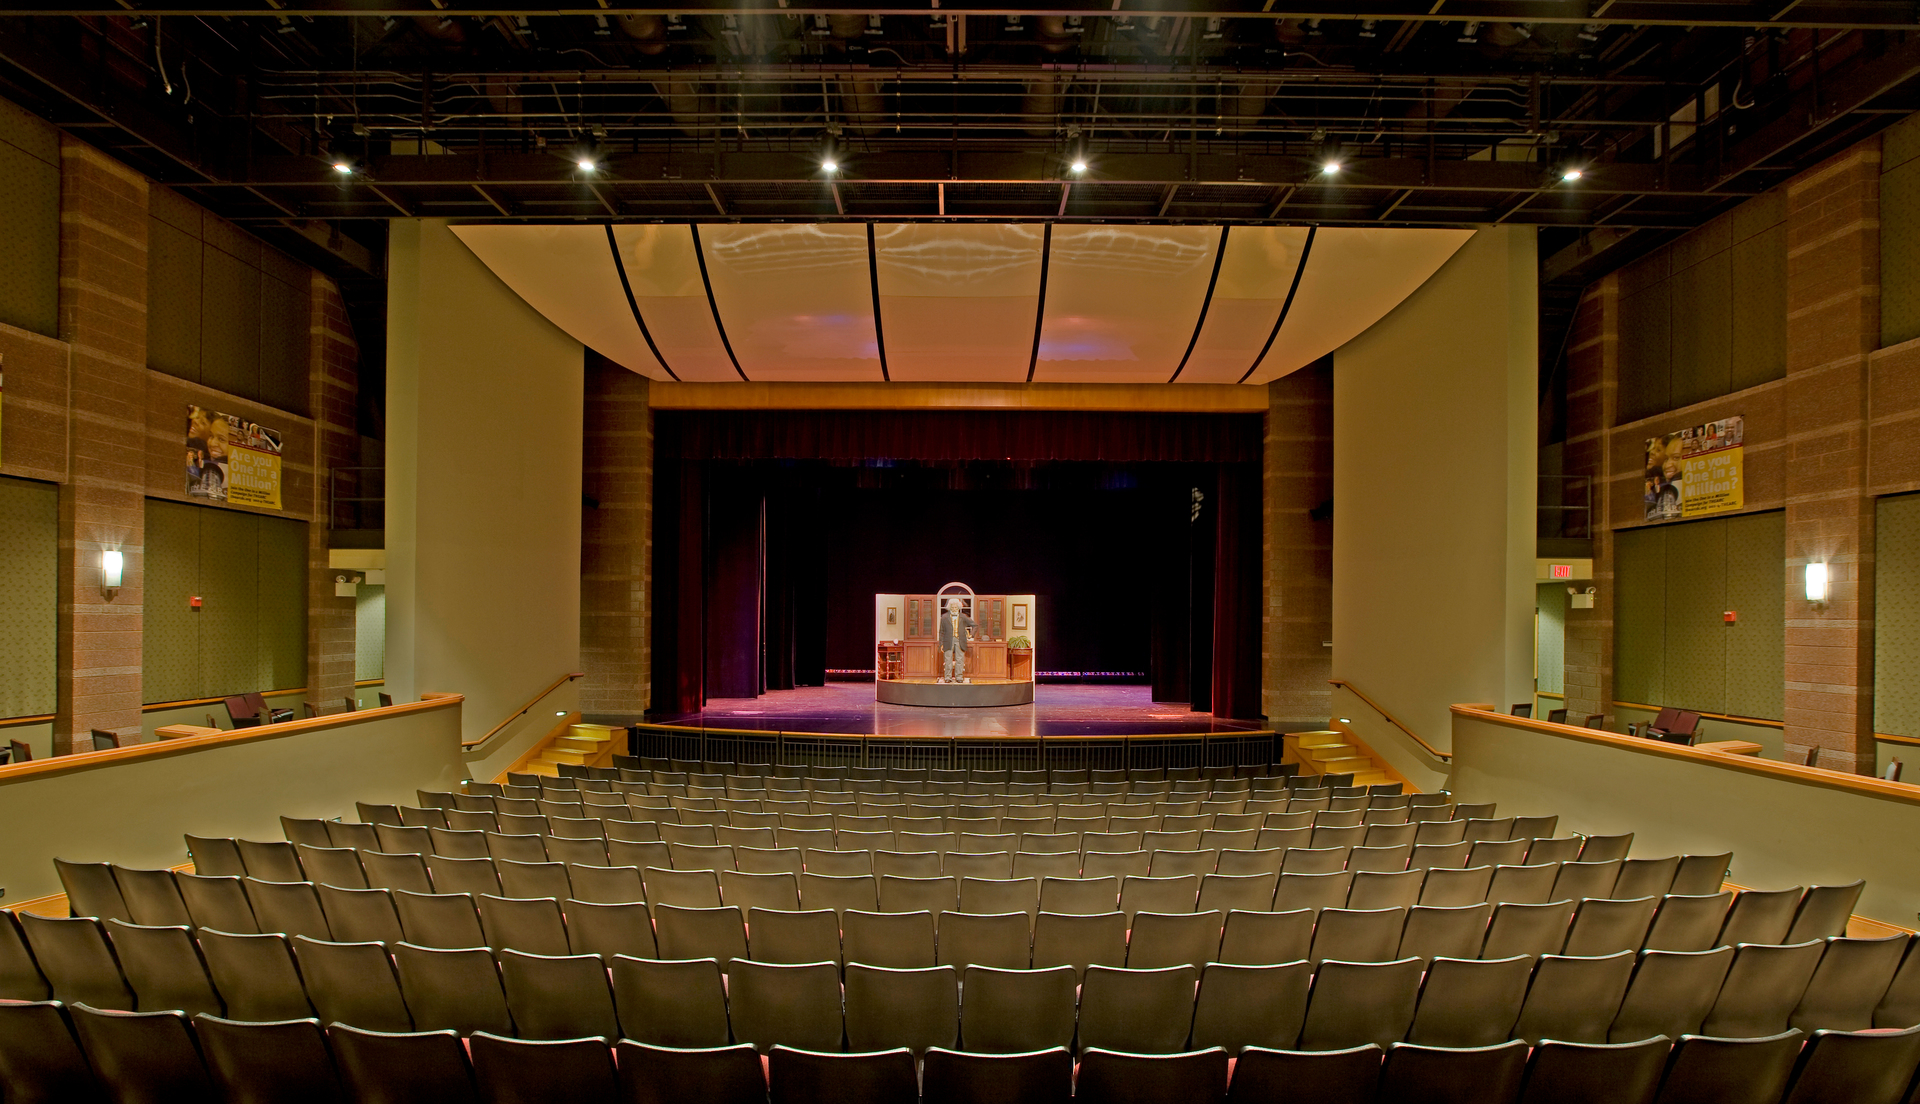 THEARC, or the Town Hall Education Arts Recreation Campus is a home for arts and culture in south Washington. The theatre where 40 of our Signum 10 cylinders are installed hosts world class performances and programs for families, youth and adults.